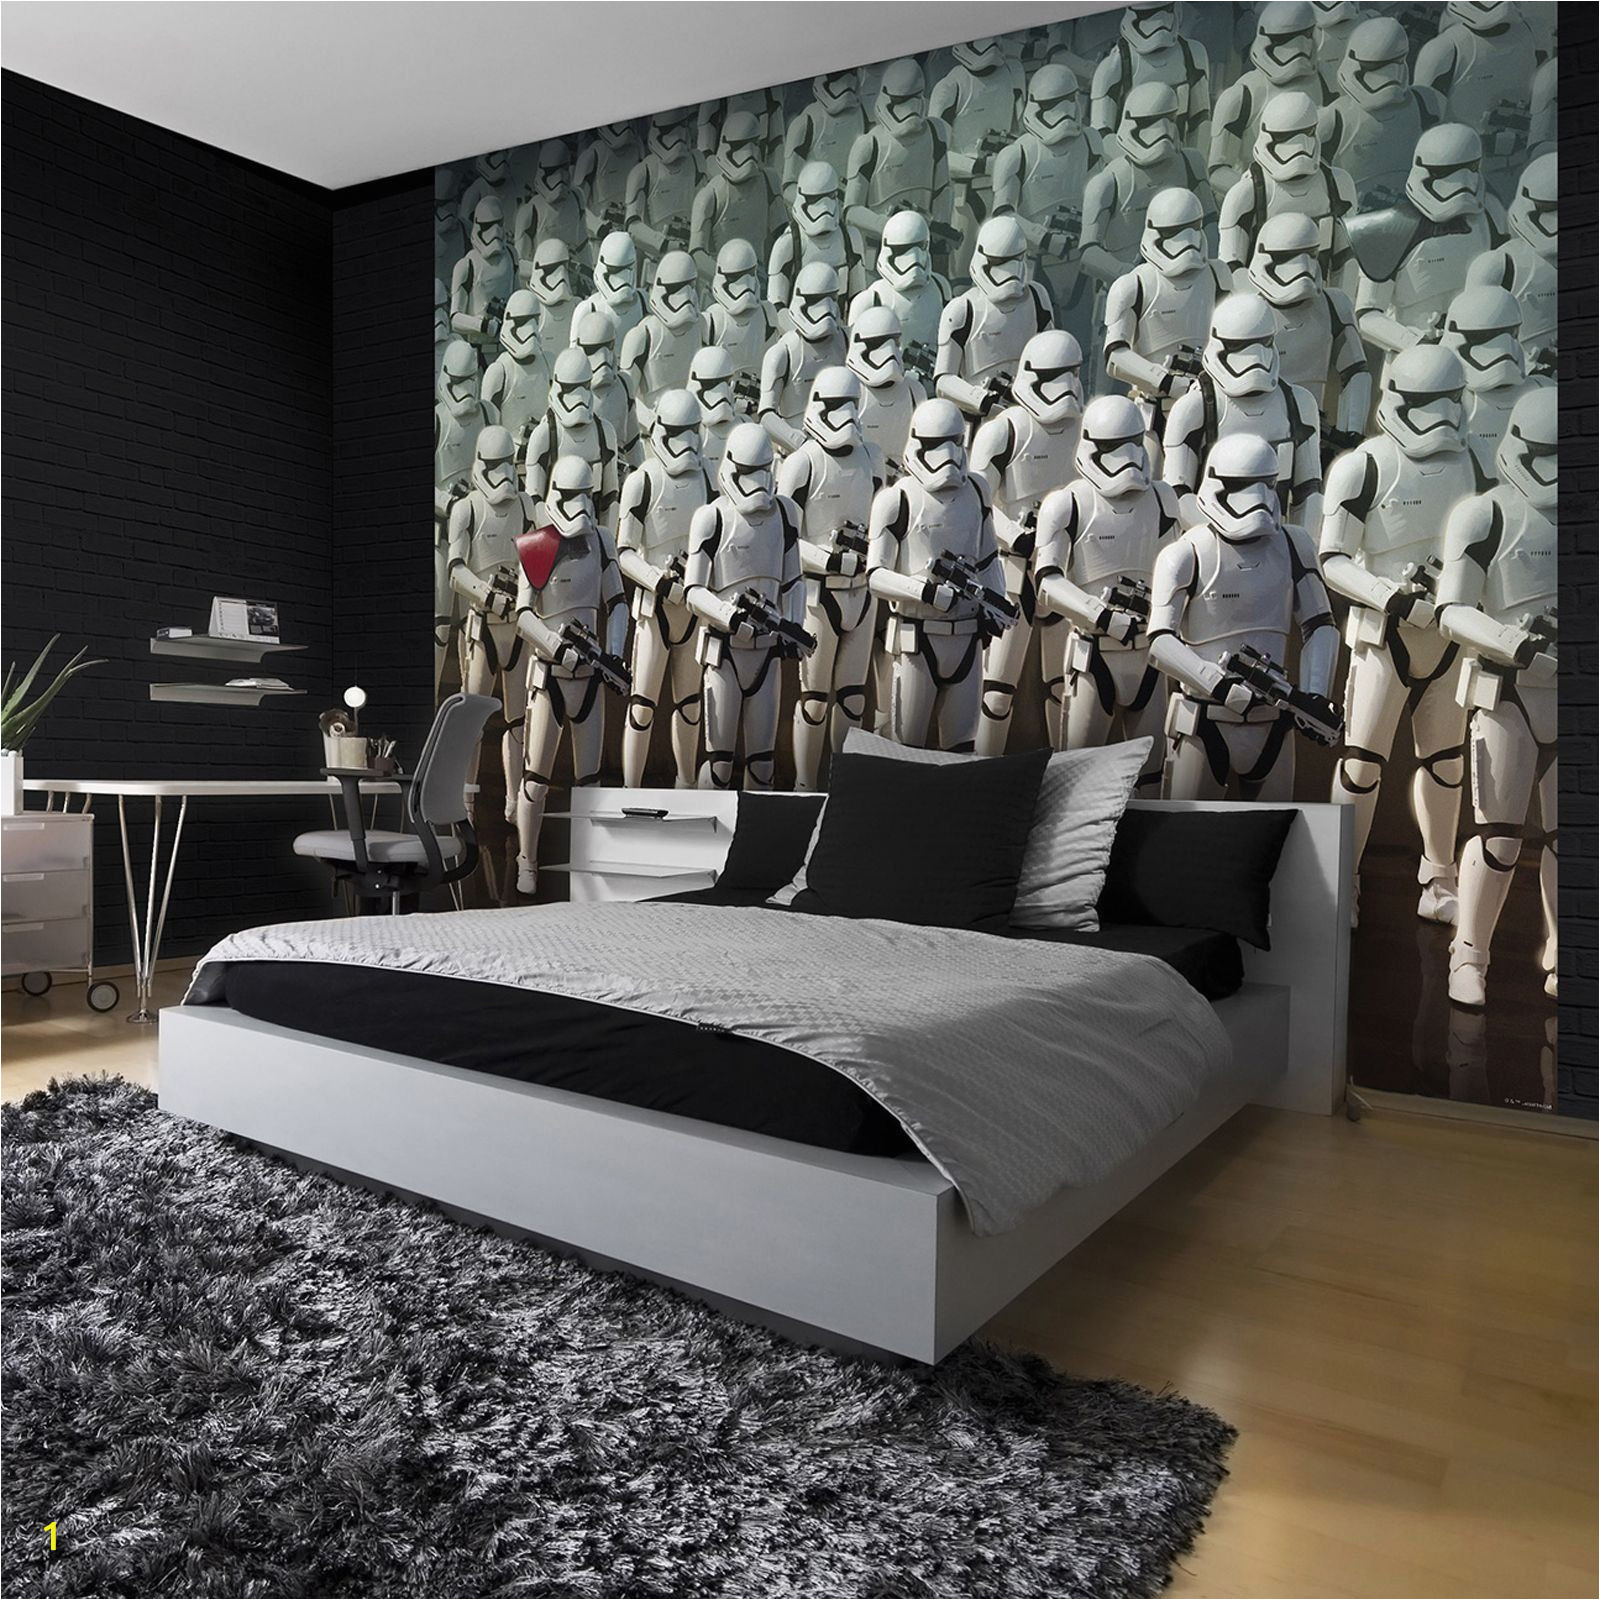 Star Destroyer Wall Mural Star Wars Stormtrooper Wall Mural Dream Bedroom …